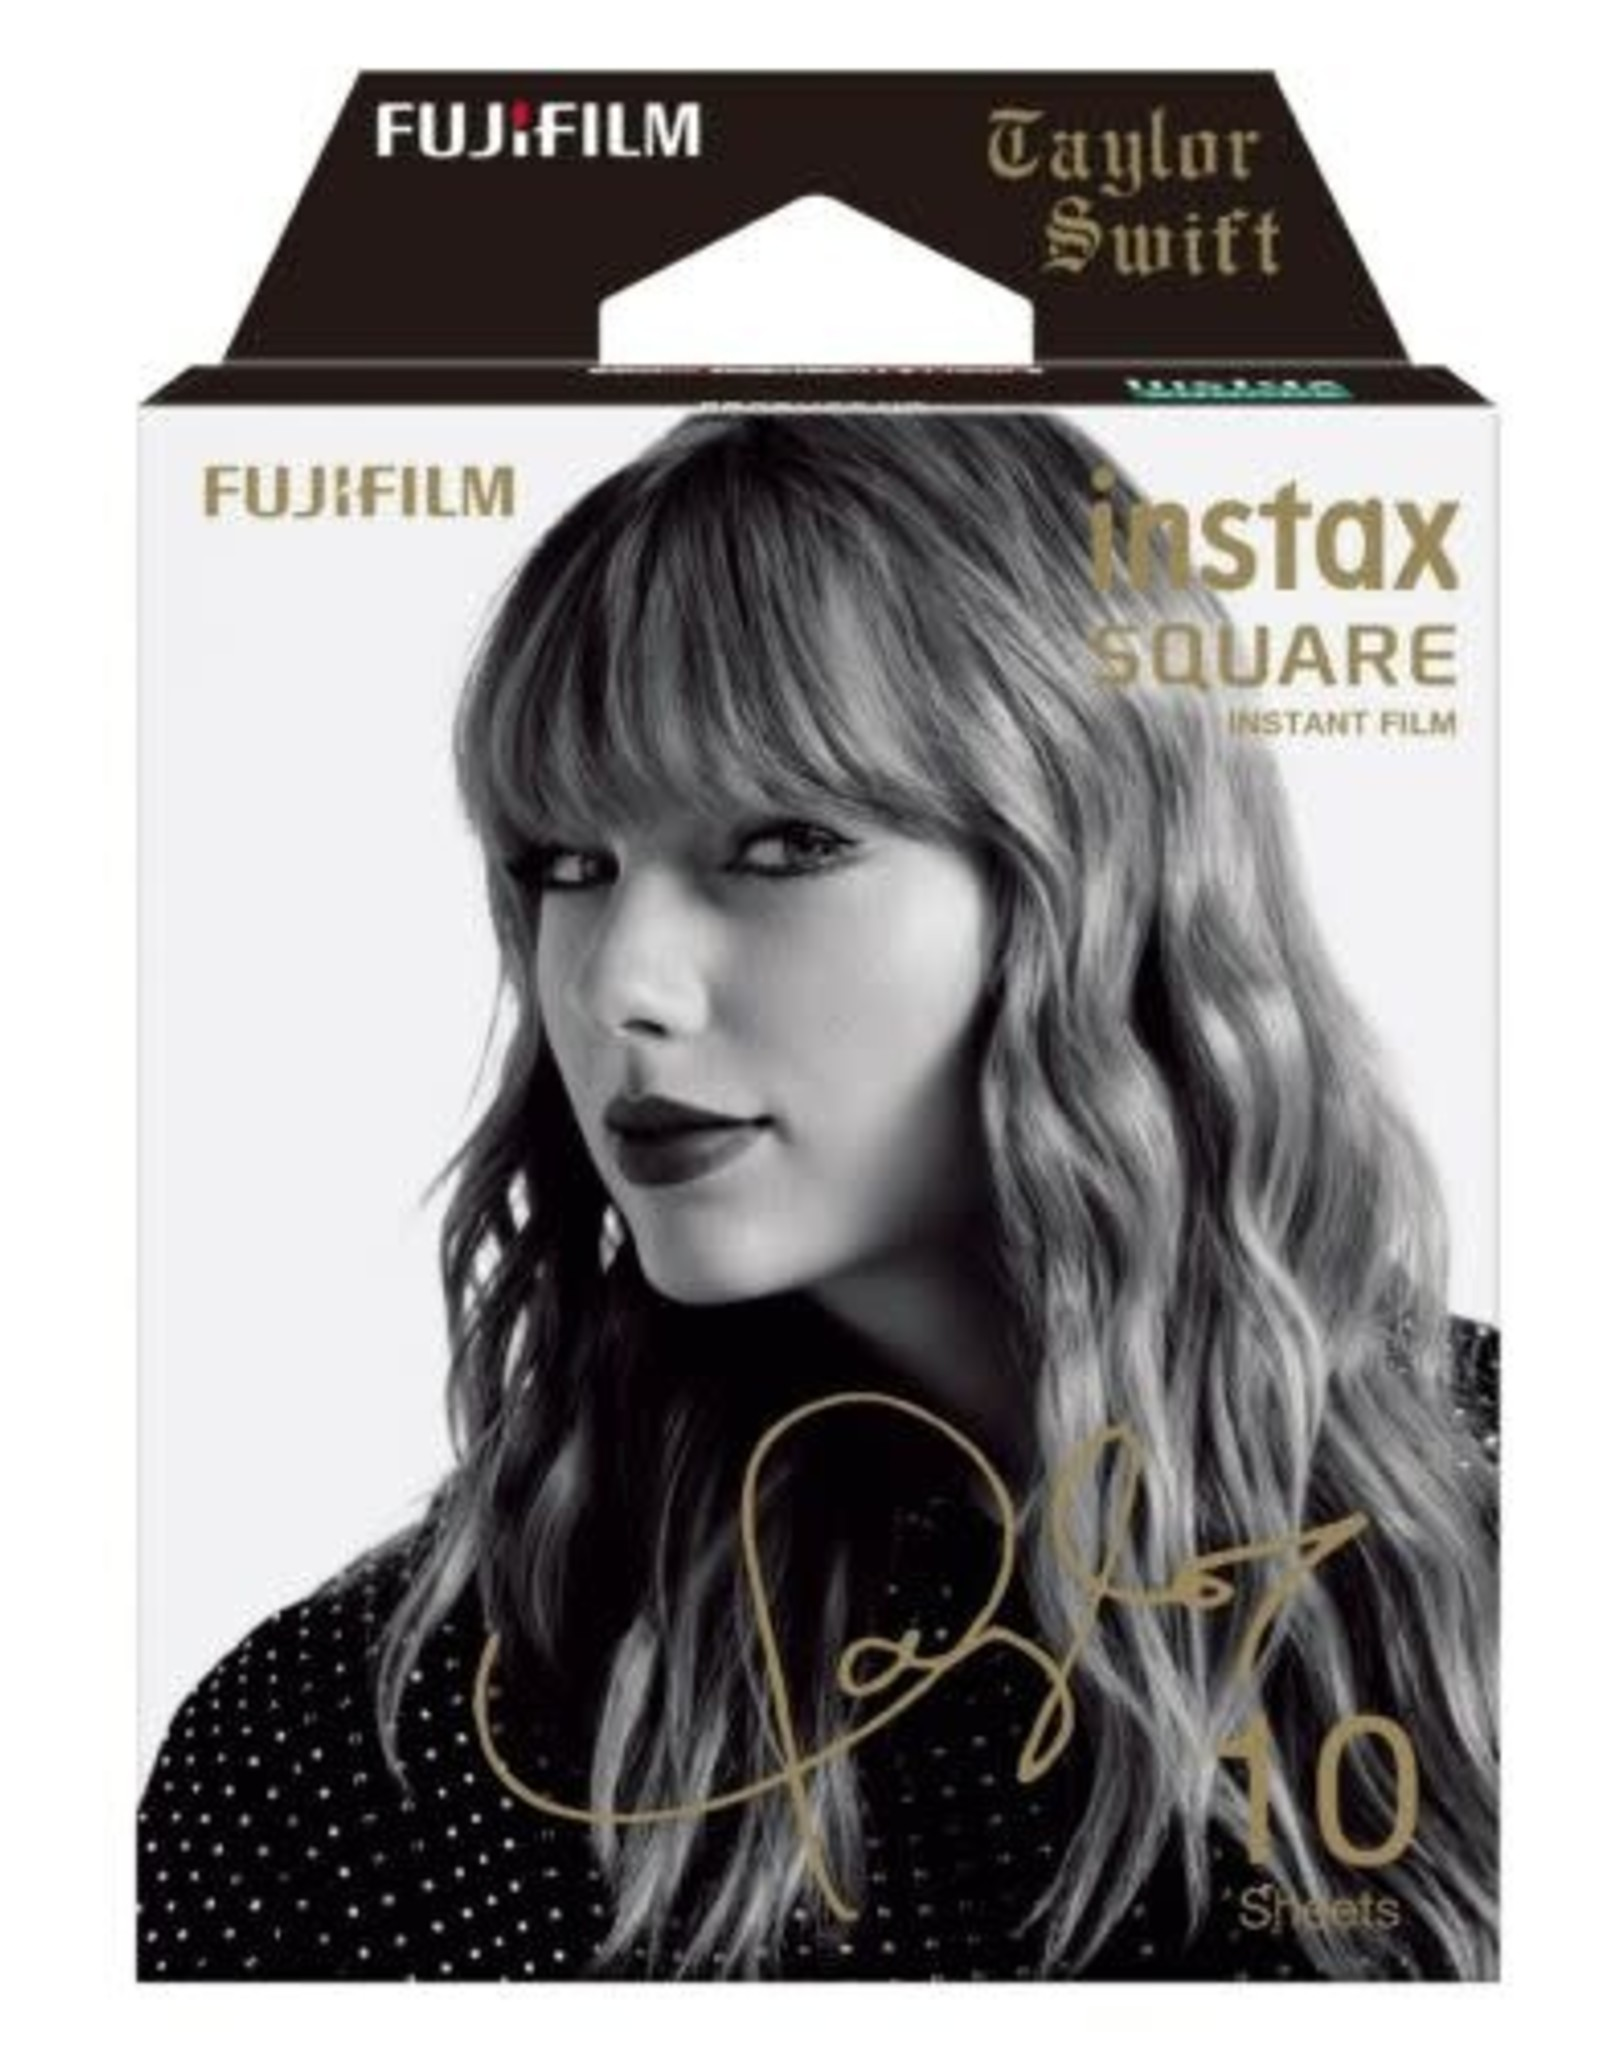 Instax Fujifilm | Instax SQUARE Instant Film - Taylor Swift (10 exposure) 600020401